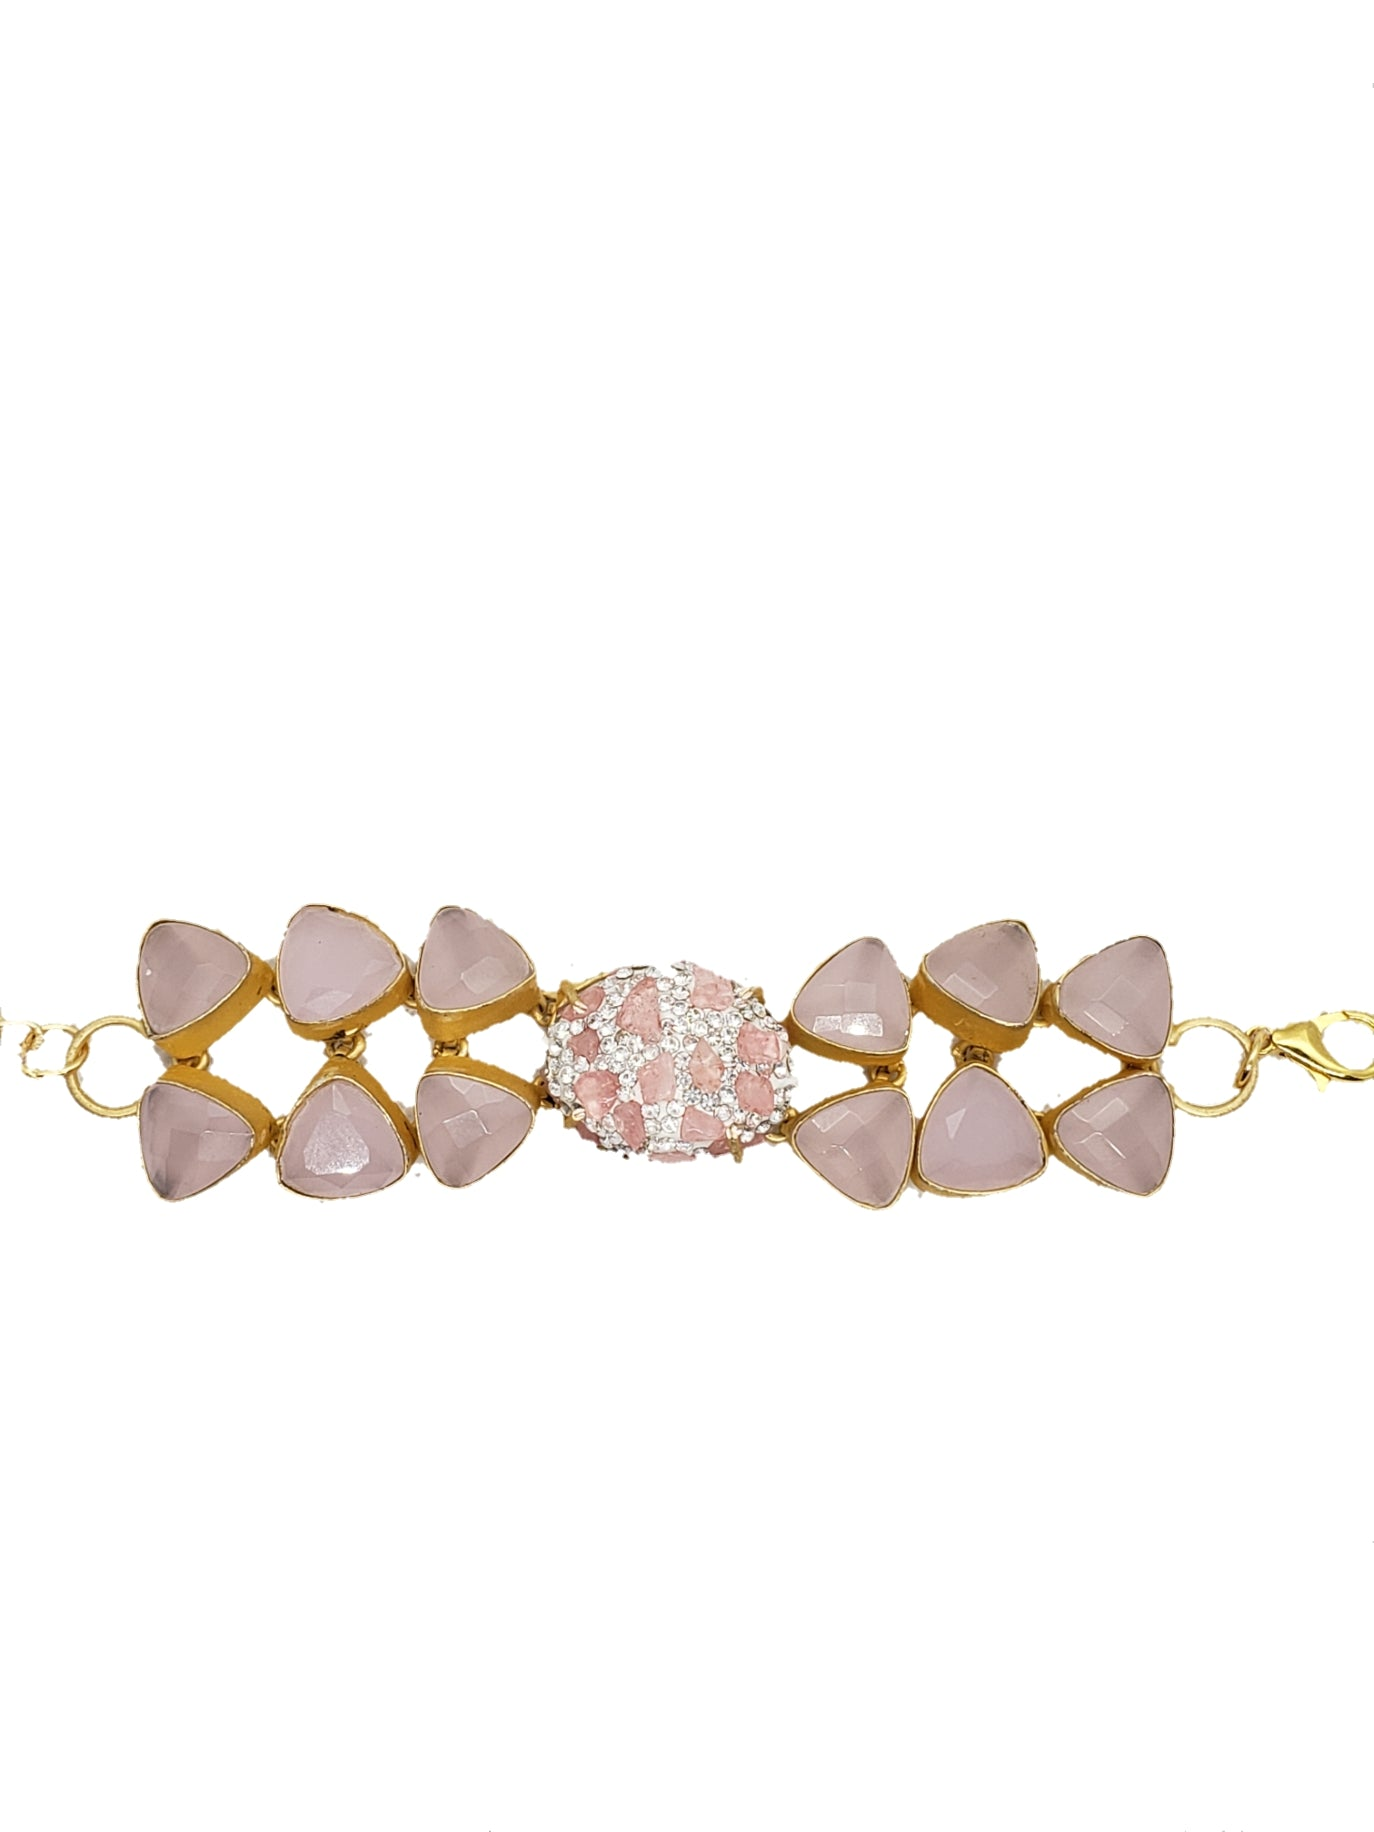 Rose Quartz and Pink Rough Stone Bracelet - The Bauble Shop